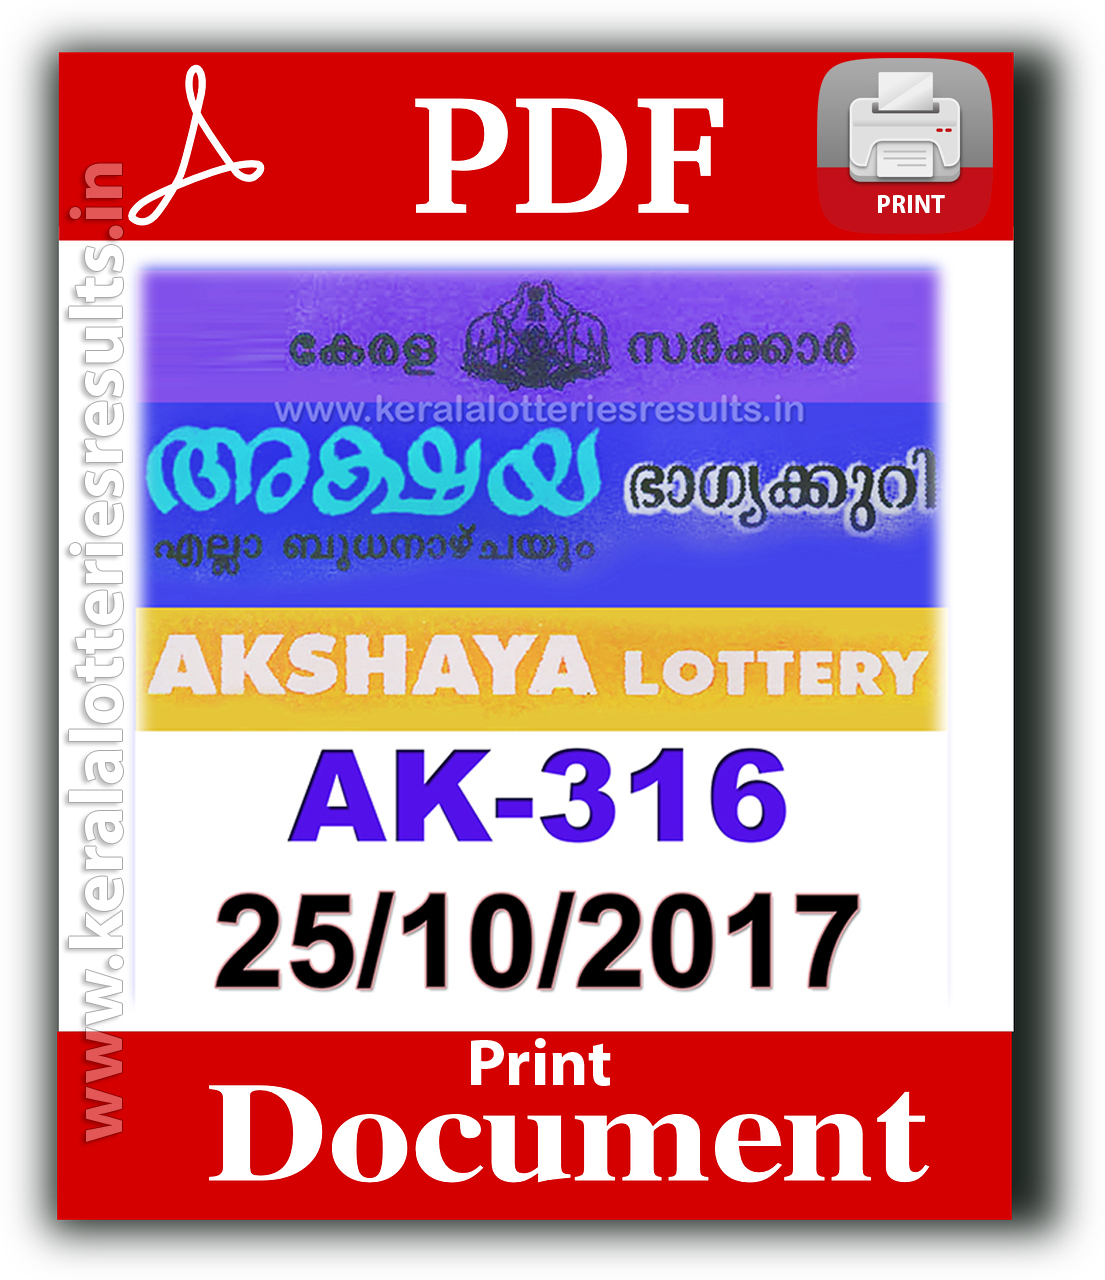 25.10.2017: Akshaya AK 316 Lottery Results Official PDF